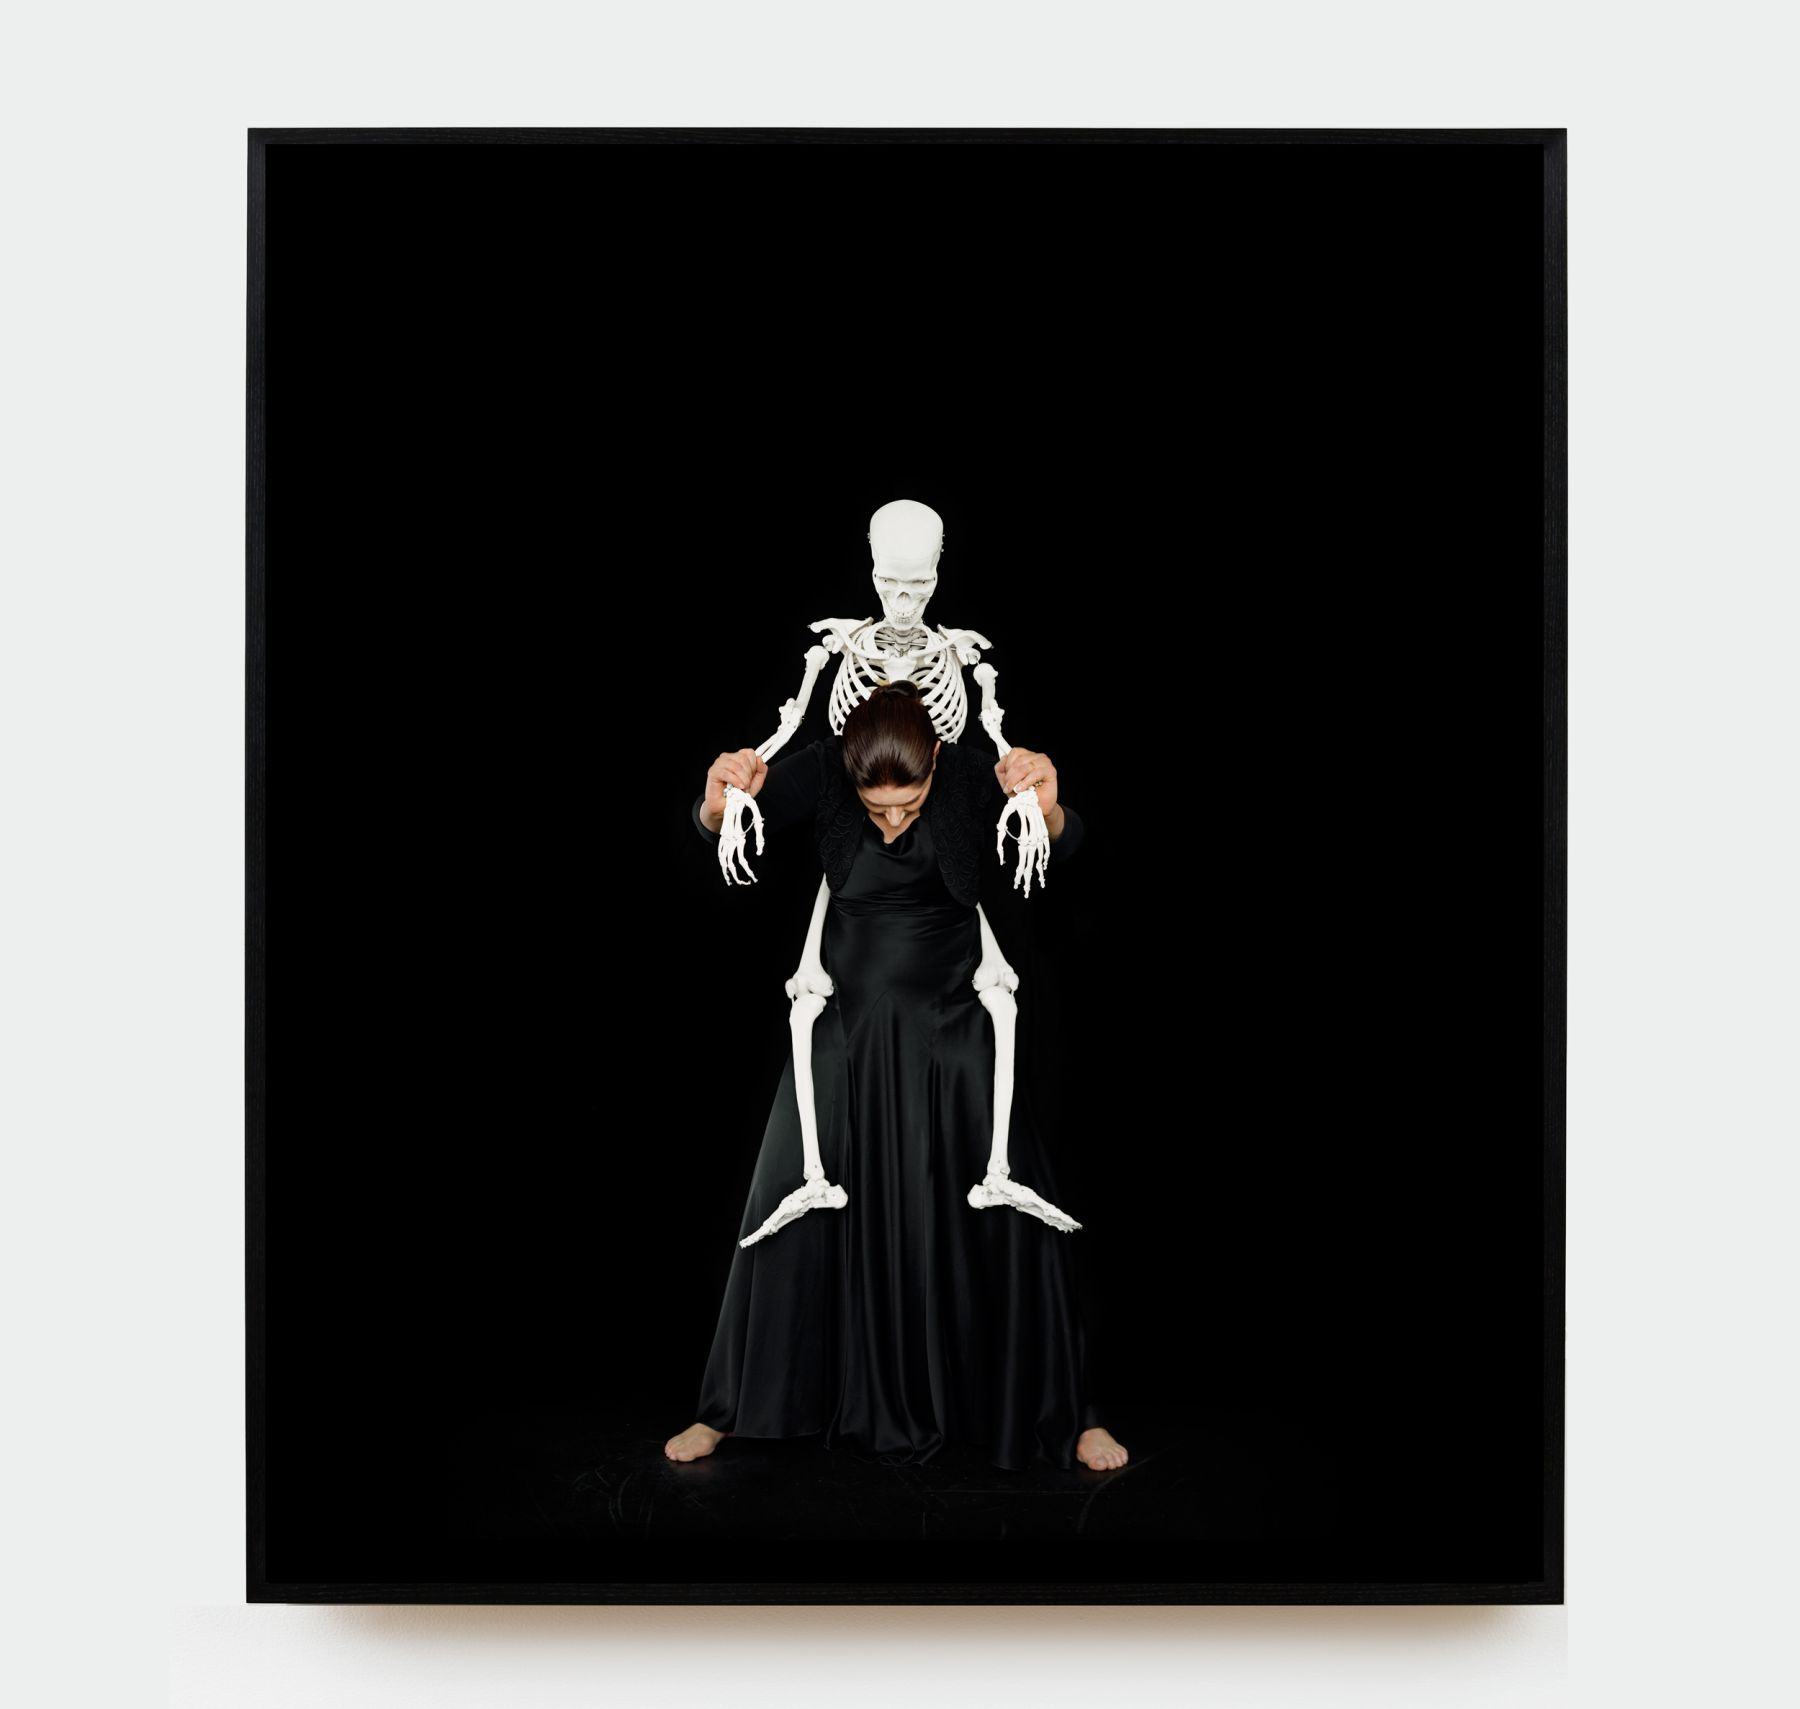 MARINA ABRAMOVIC, Standing with Skeleton, 2008/2016